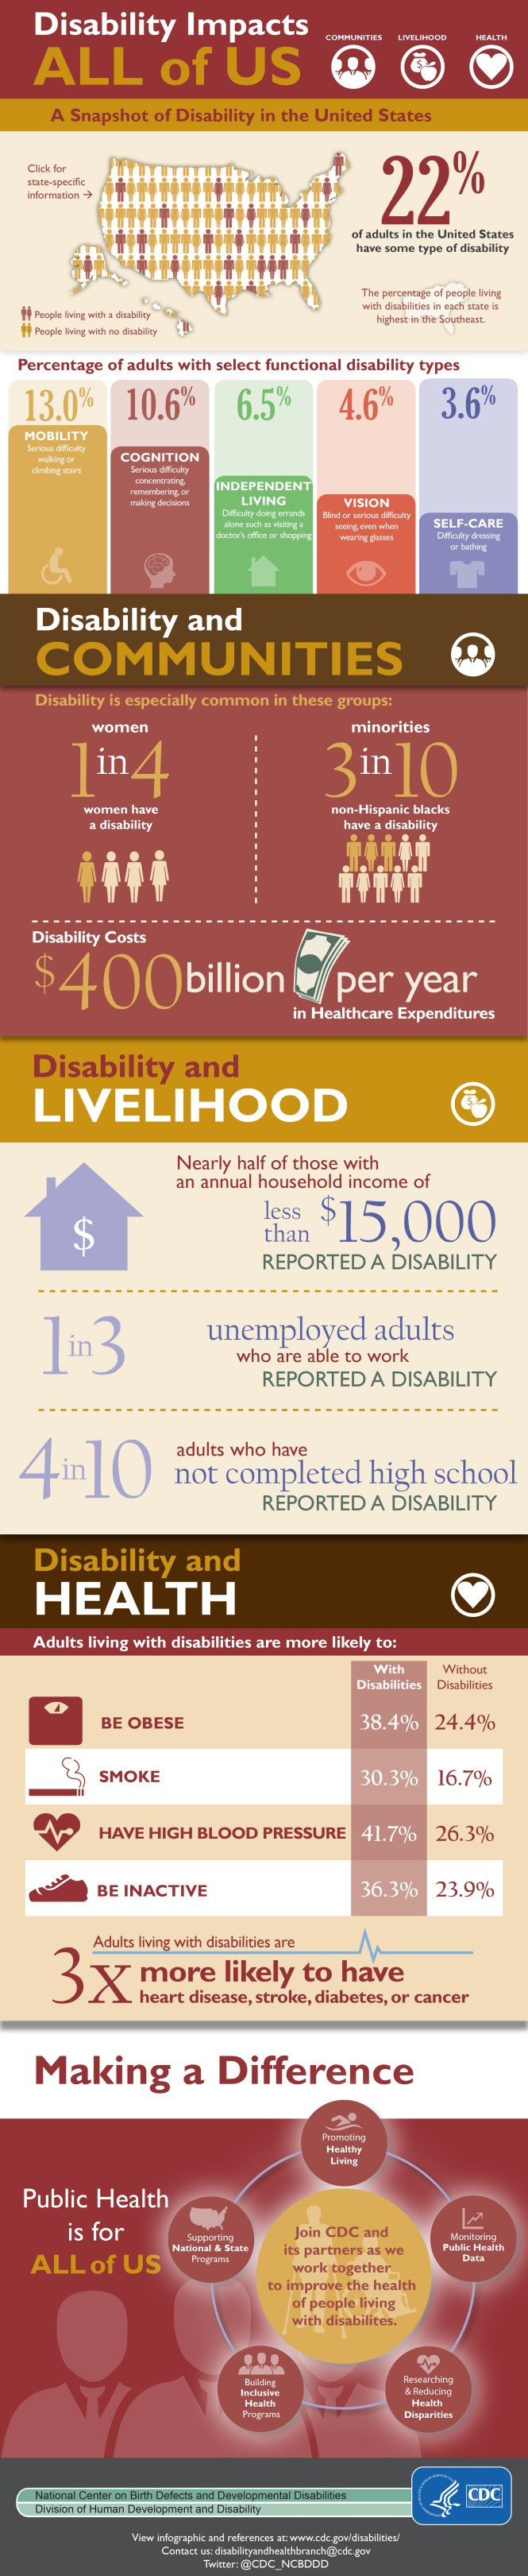 English_Disabilities_Impacts_All_of_US_Final508